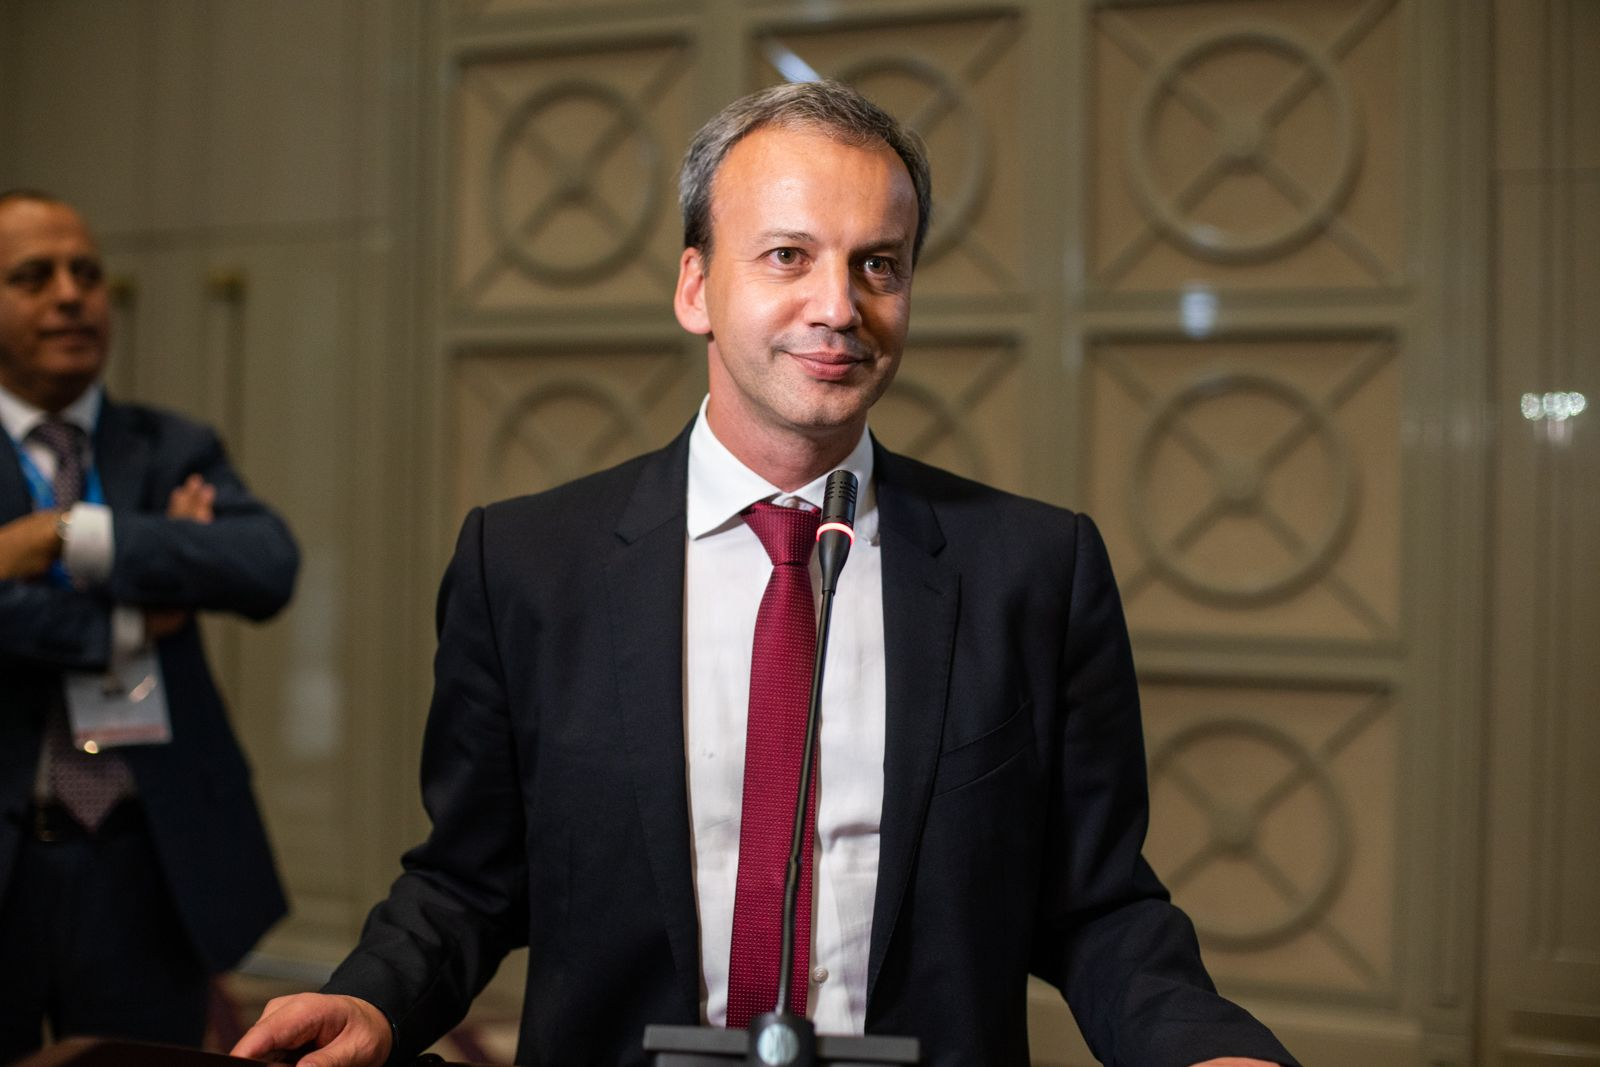 Dvorkovich victory speech